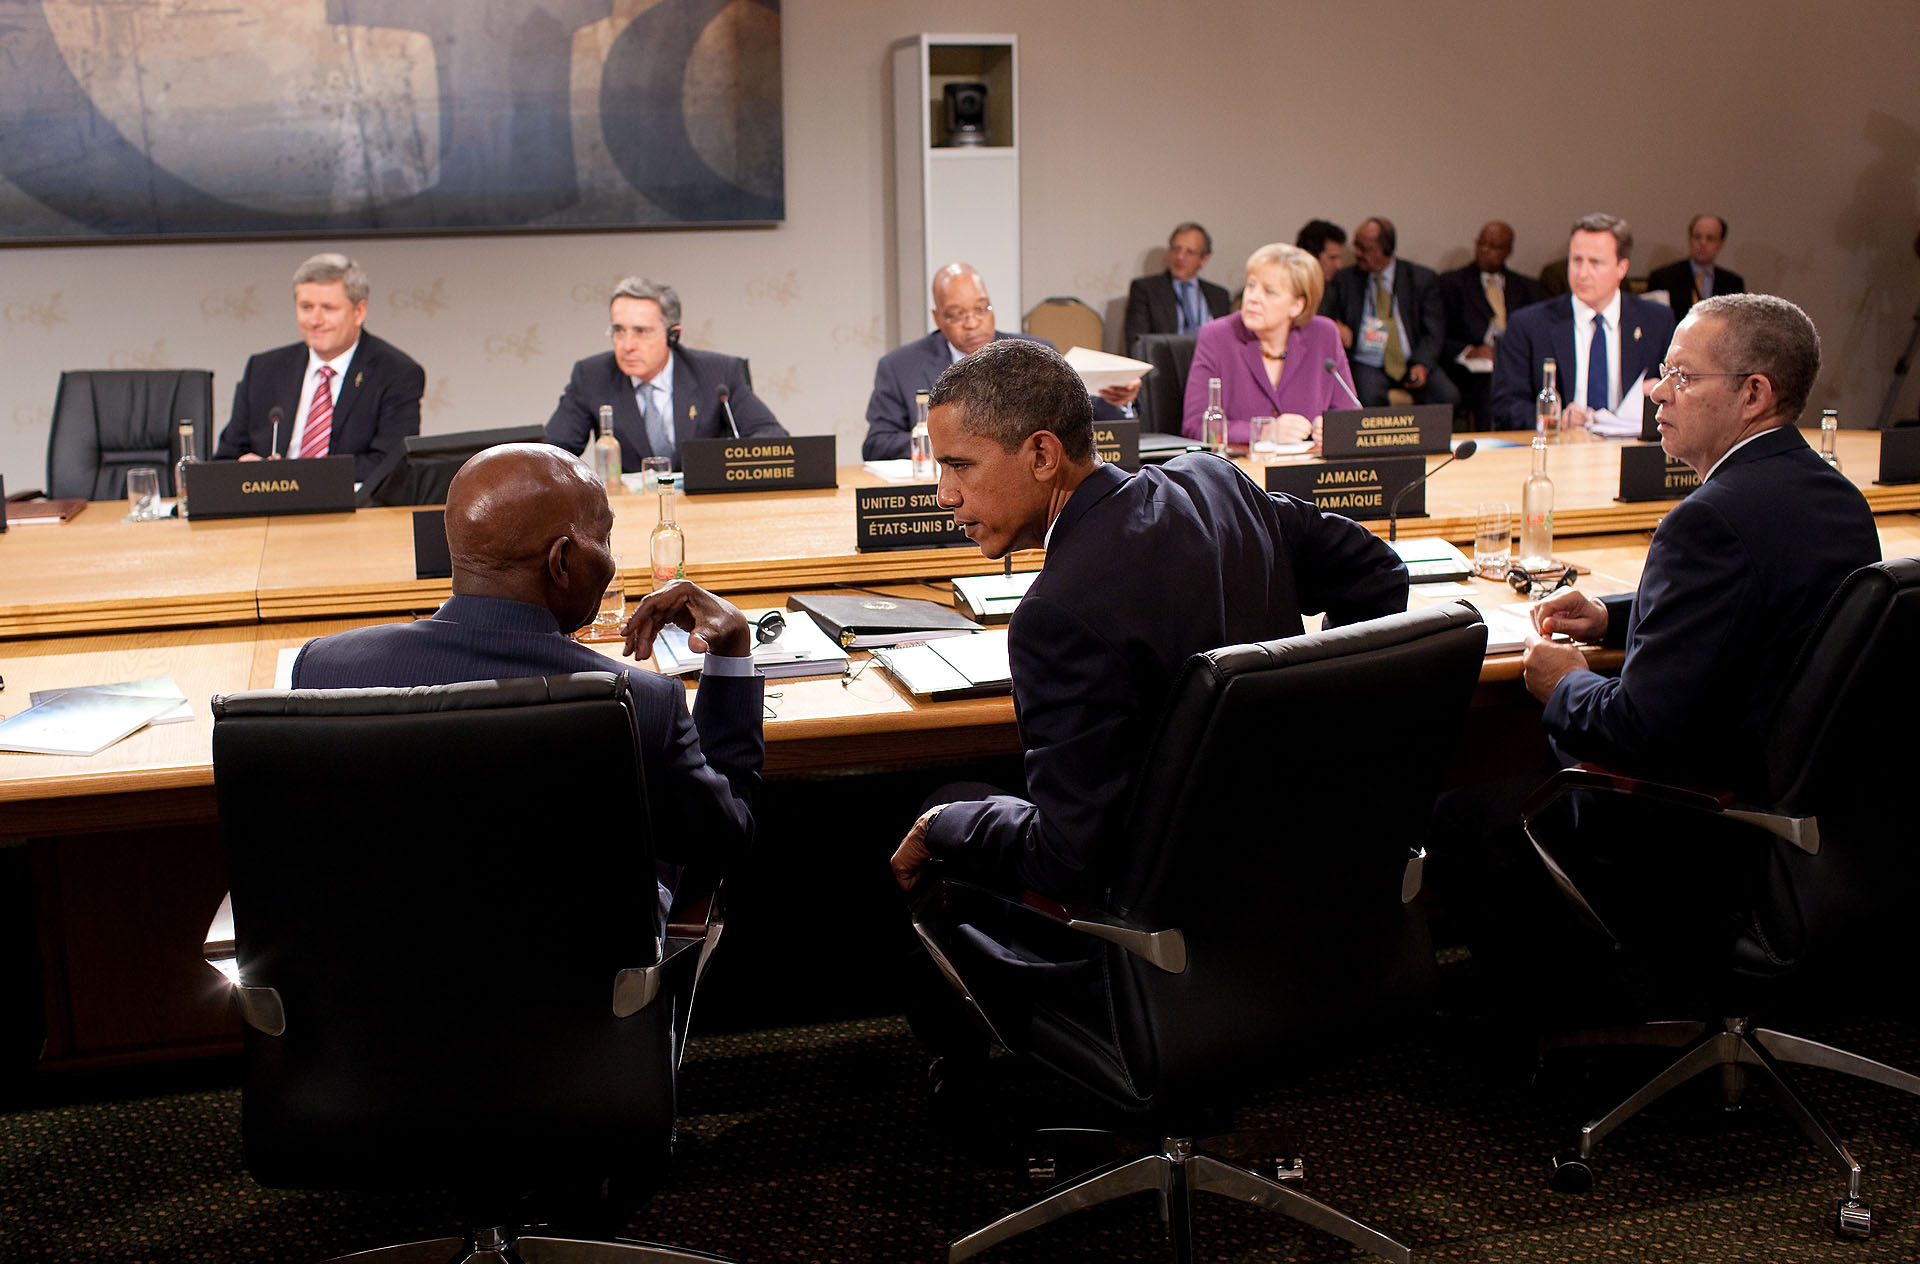 President Barack Obama Talks with President Abdoulaye Wade of Senegal at G8 Summit